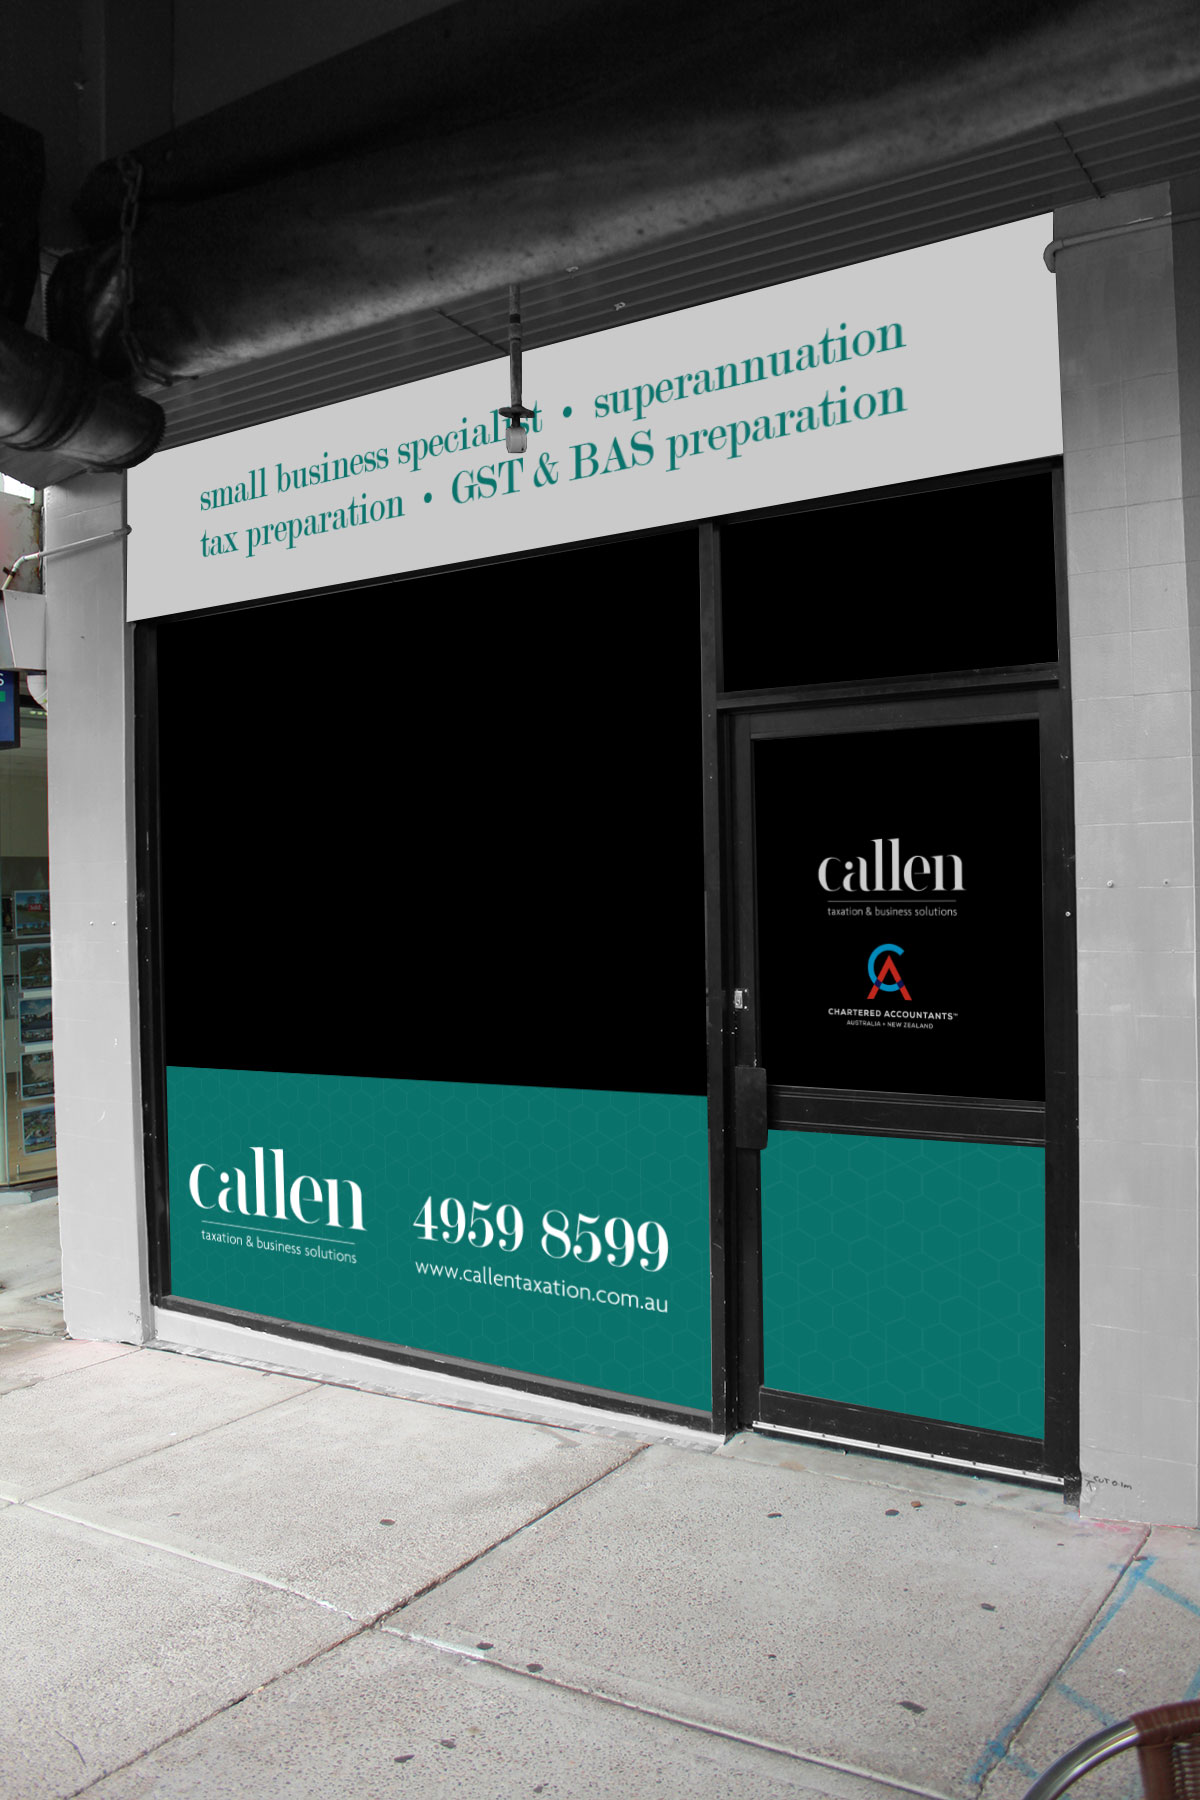 Callen Taxation & Business Solutions Signage